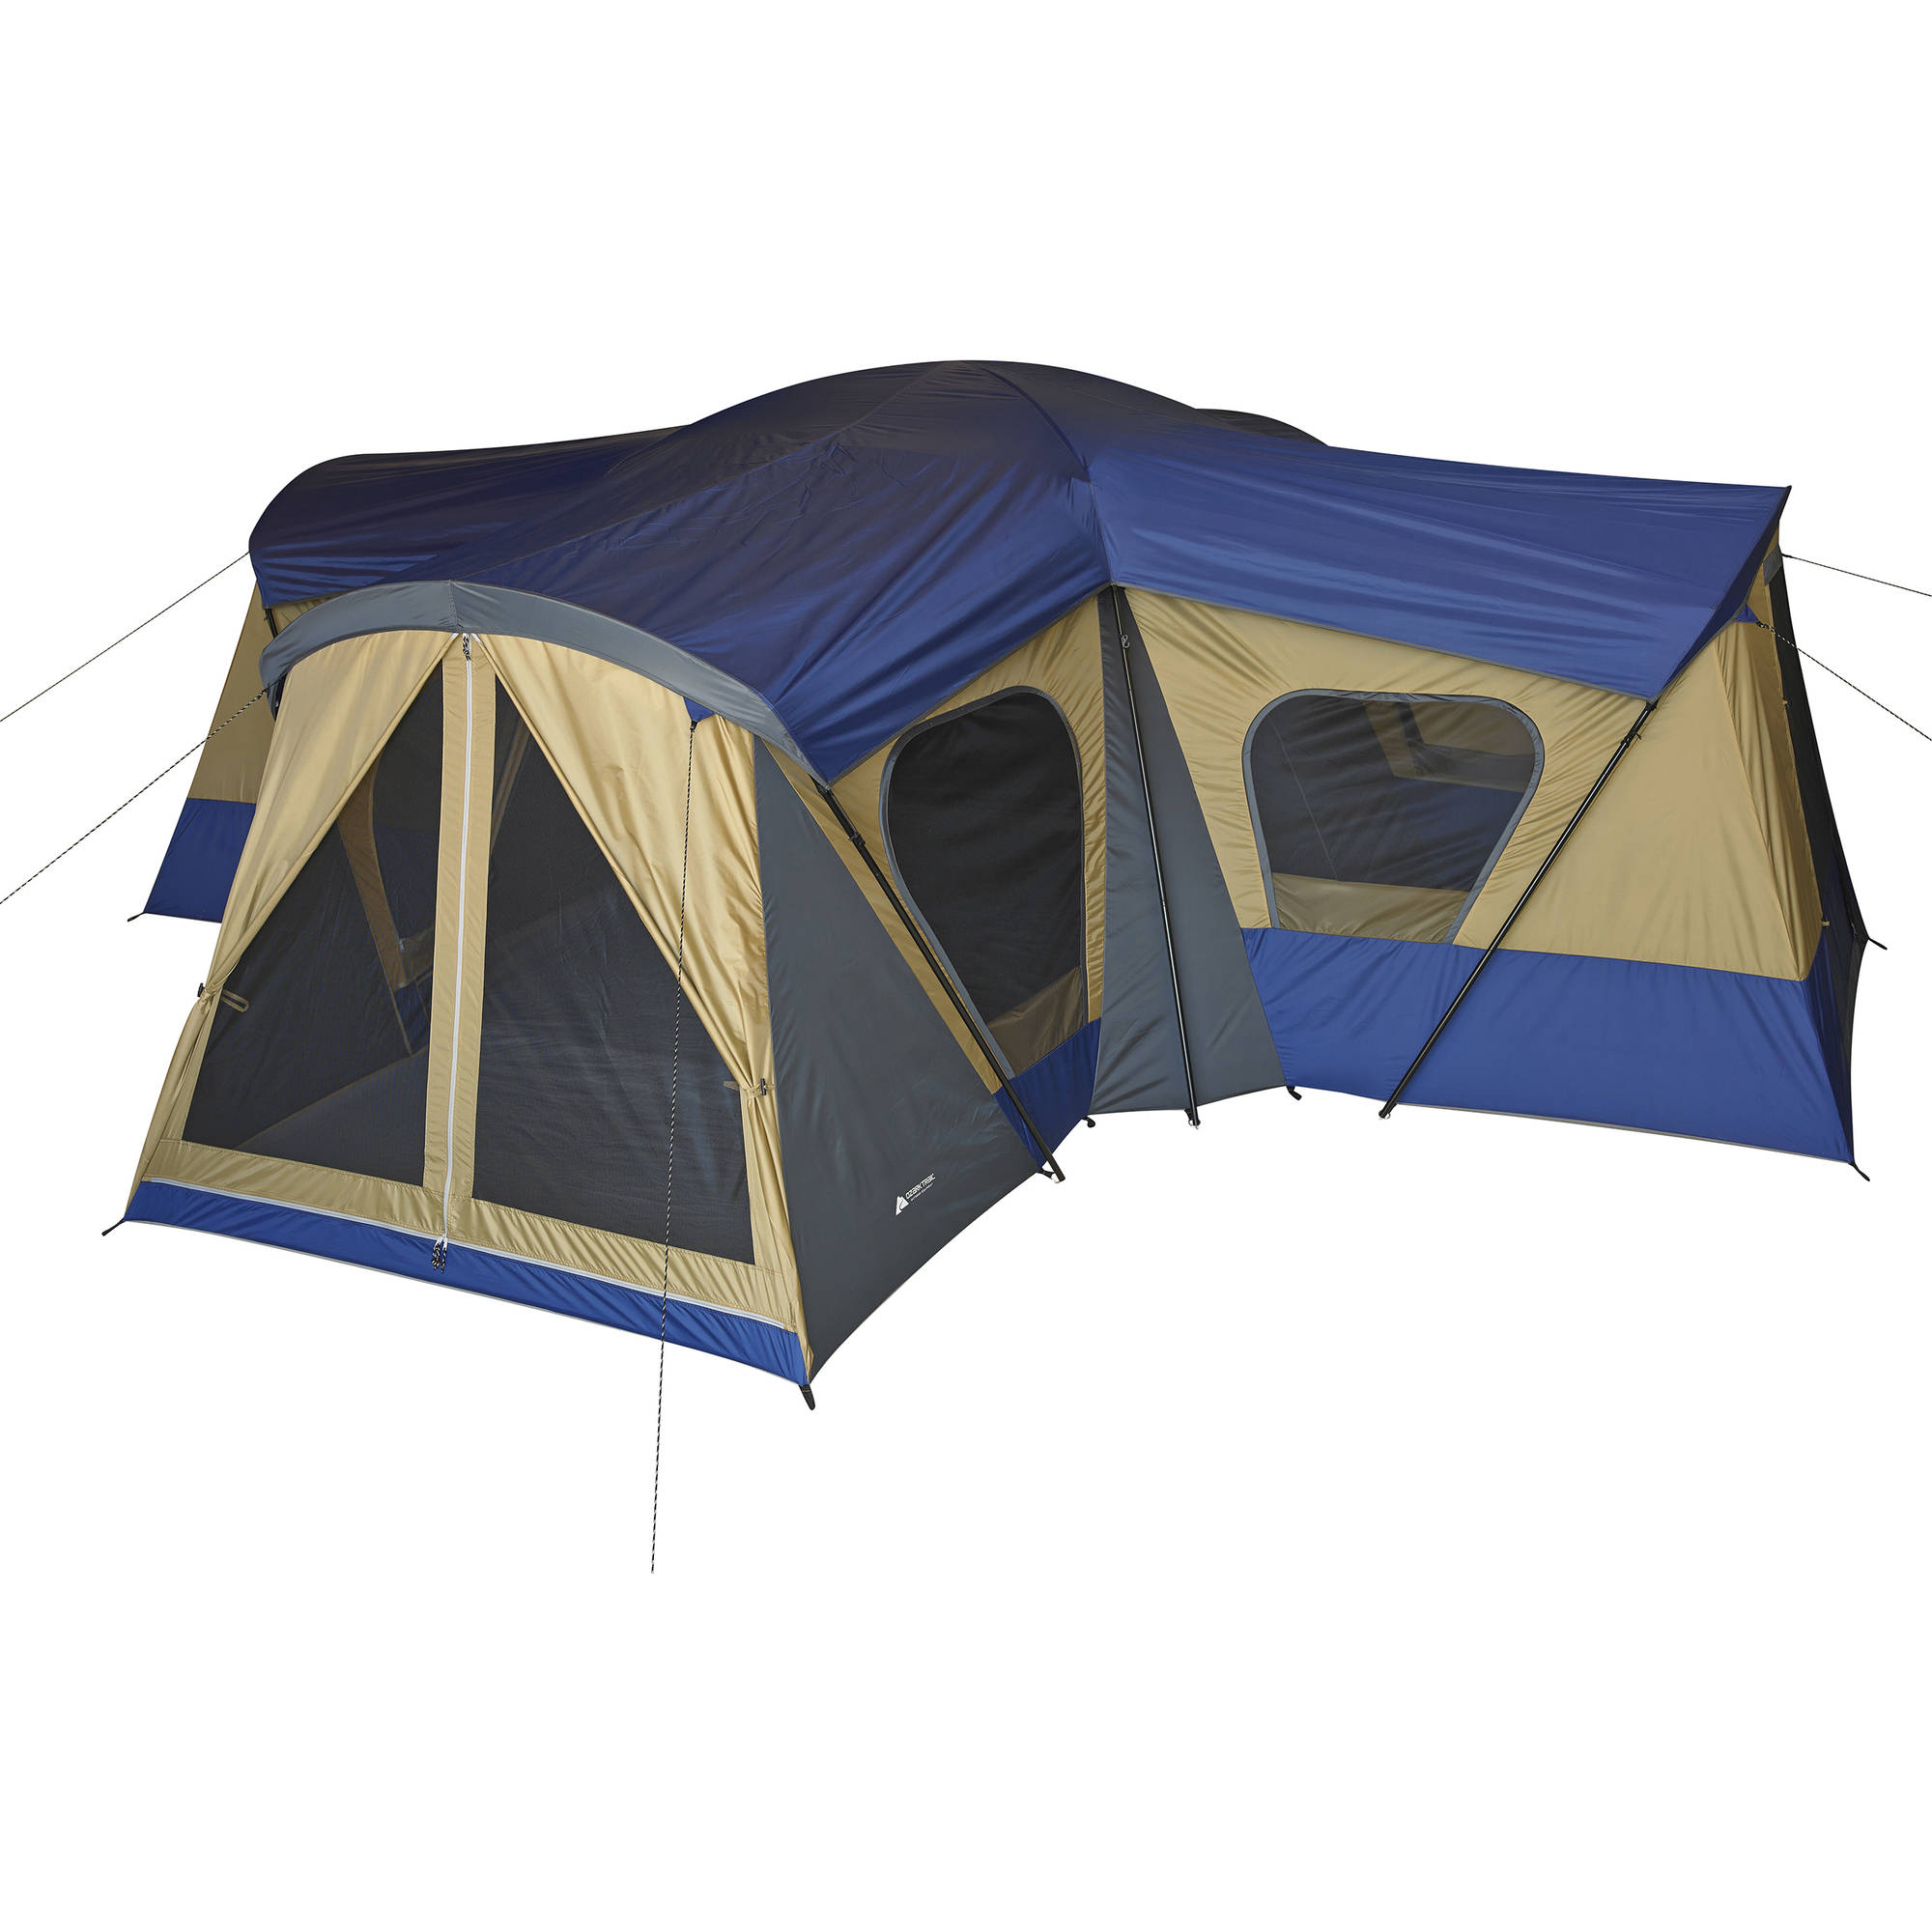 cabin cabins coleman wid hei fly rainfly instant signature tent person with